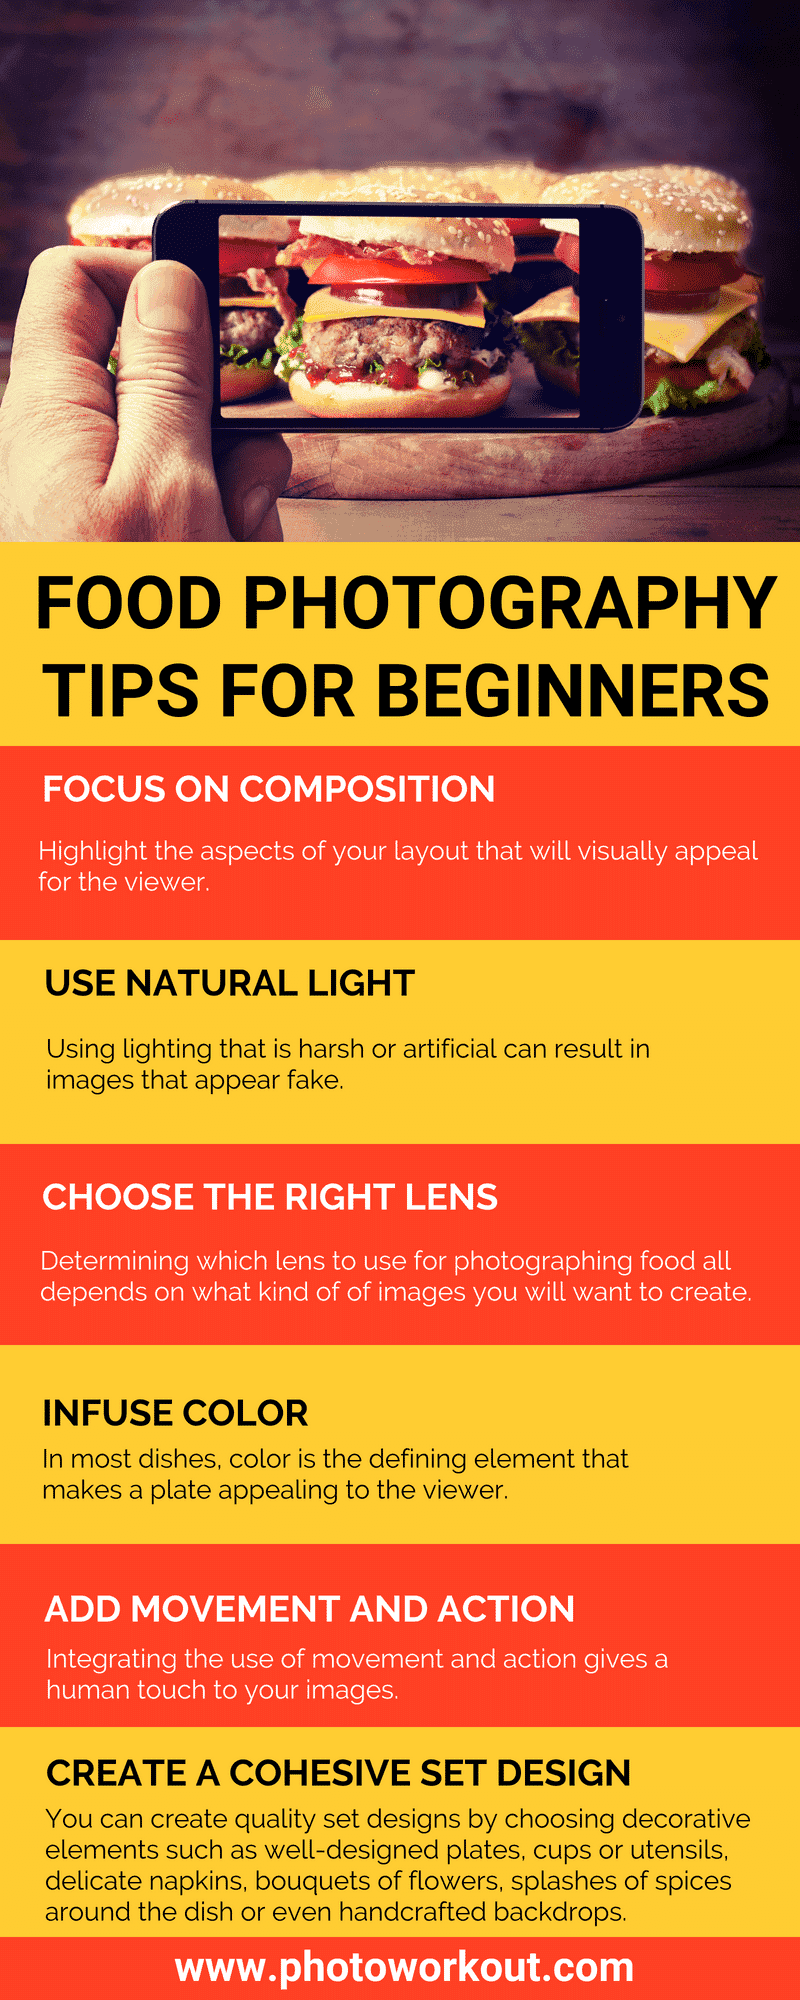 Food Photography for Beginners (Infographic)